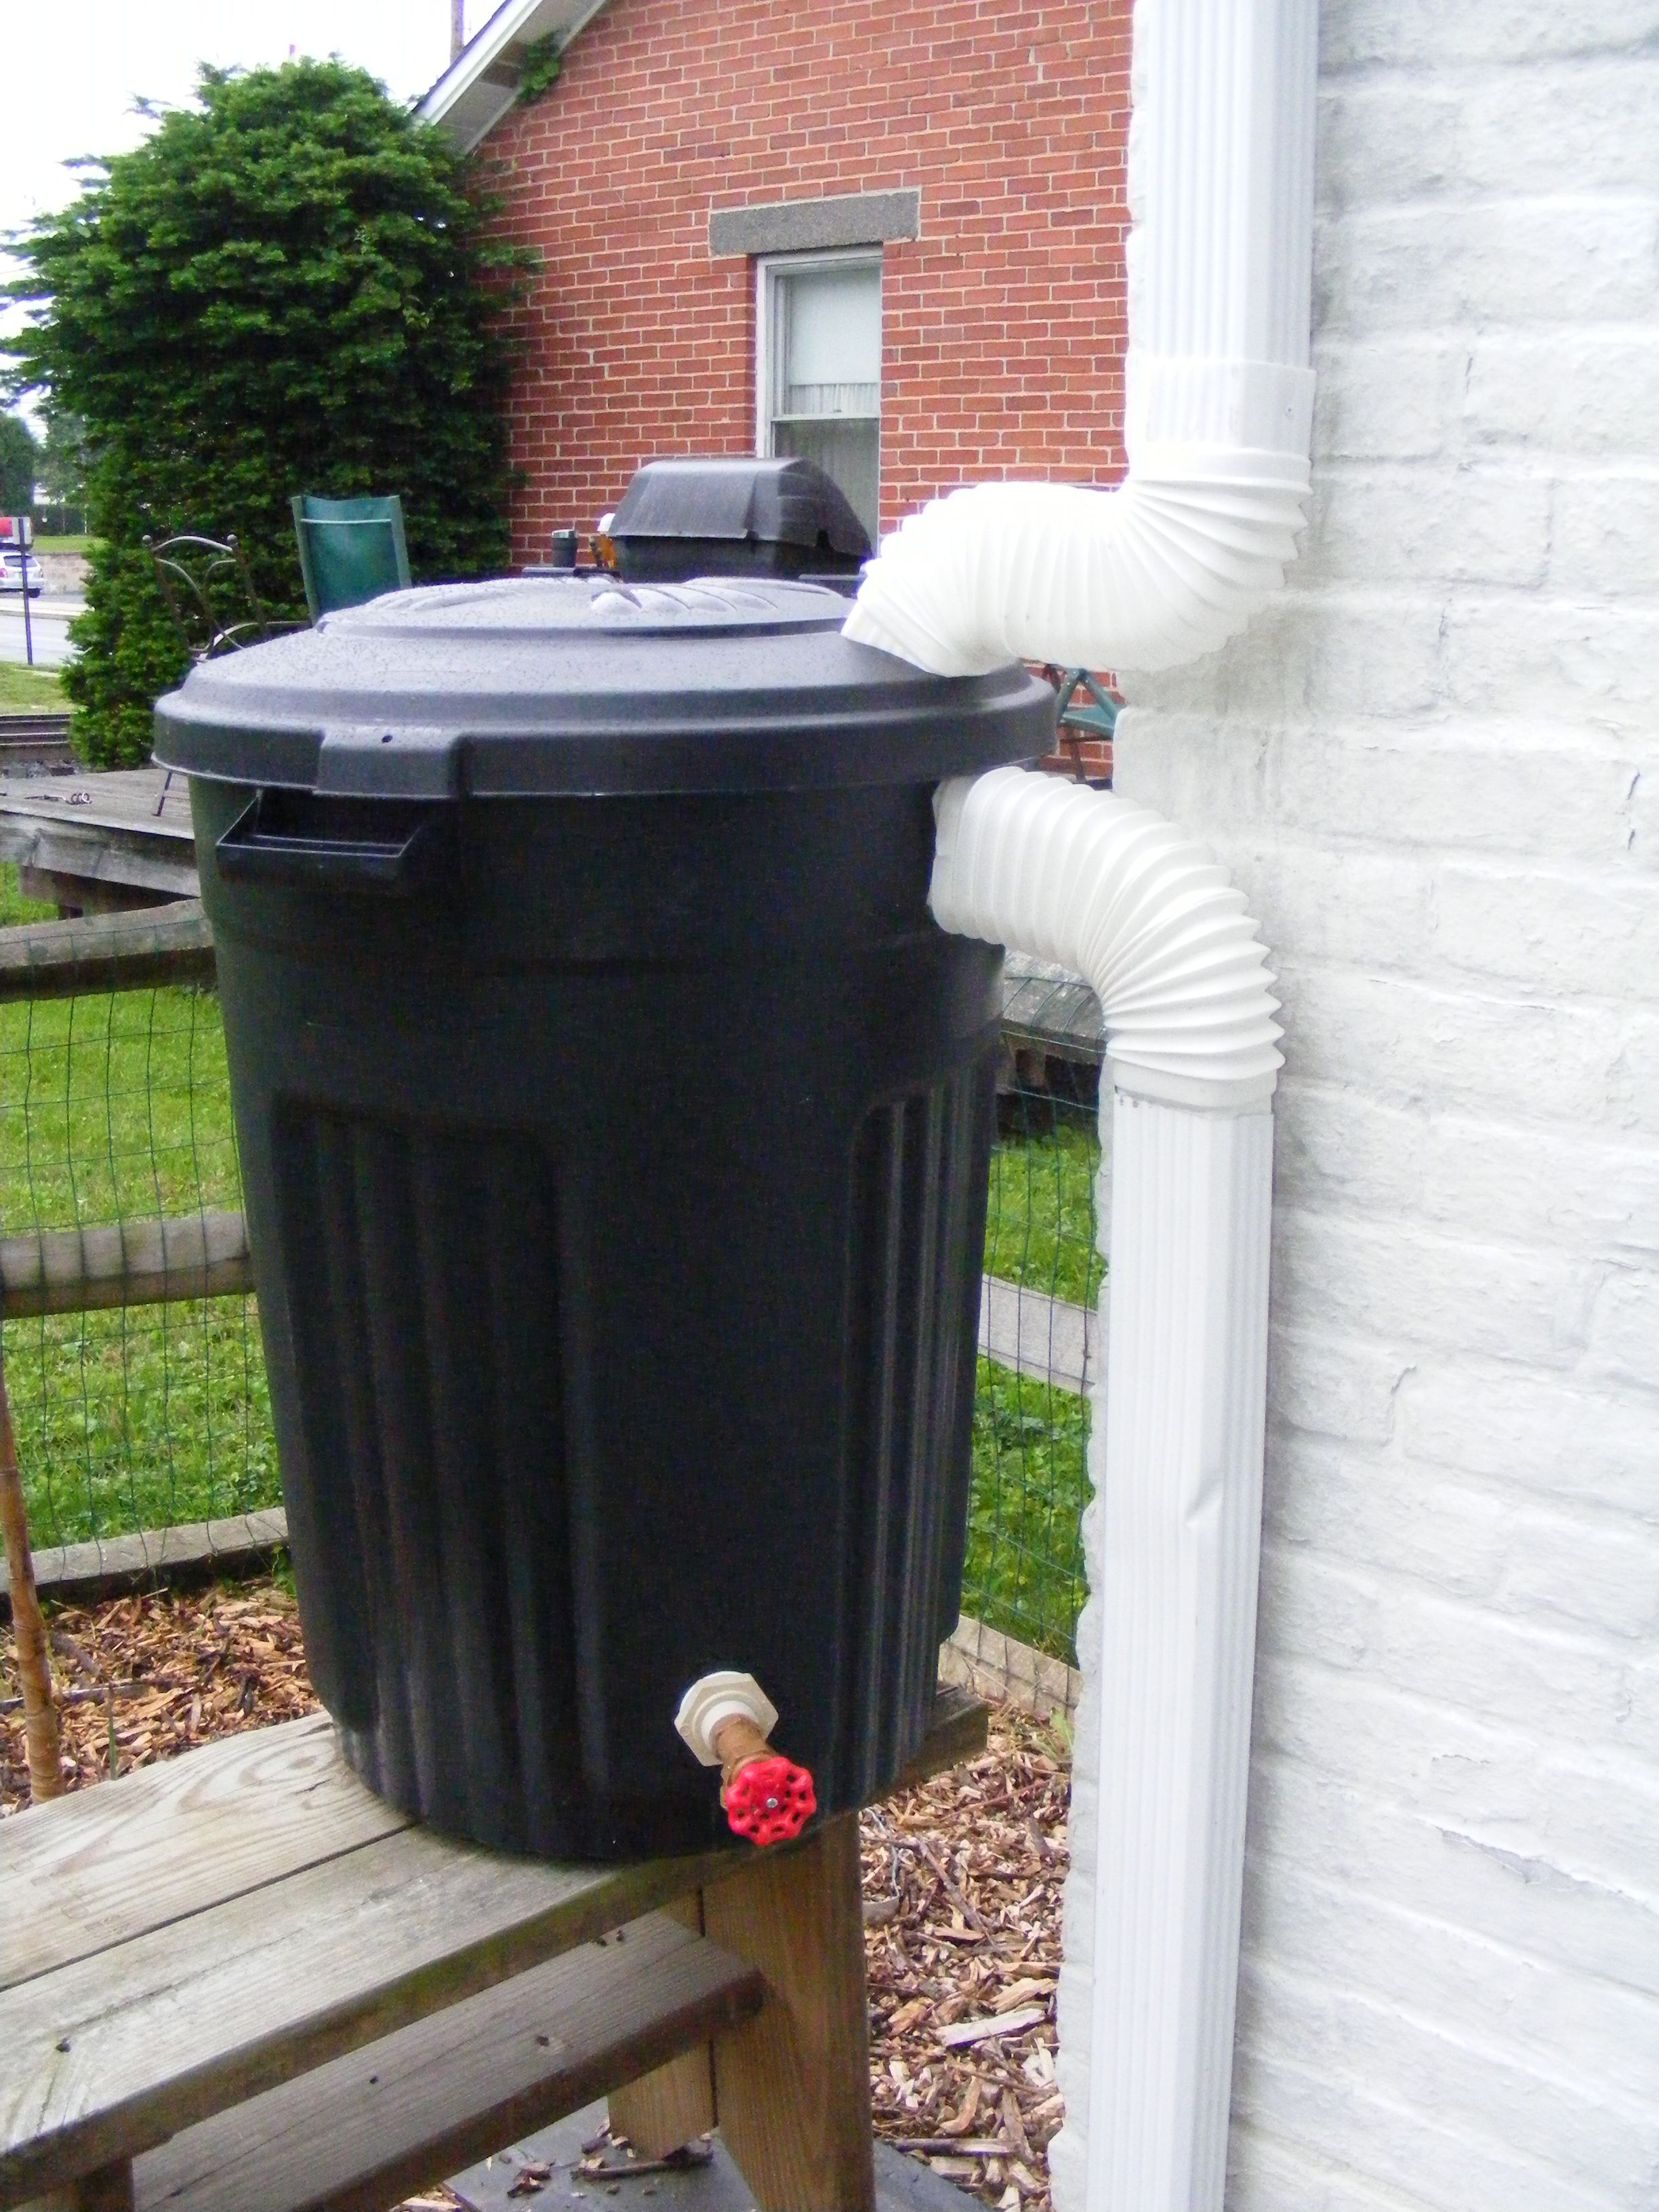 Cheapest Diy Rain Barrel That Works Better Than Most Alex S Hobby Site Rain Barrel Rainwater Harvesting Rainwater Harvesting System